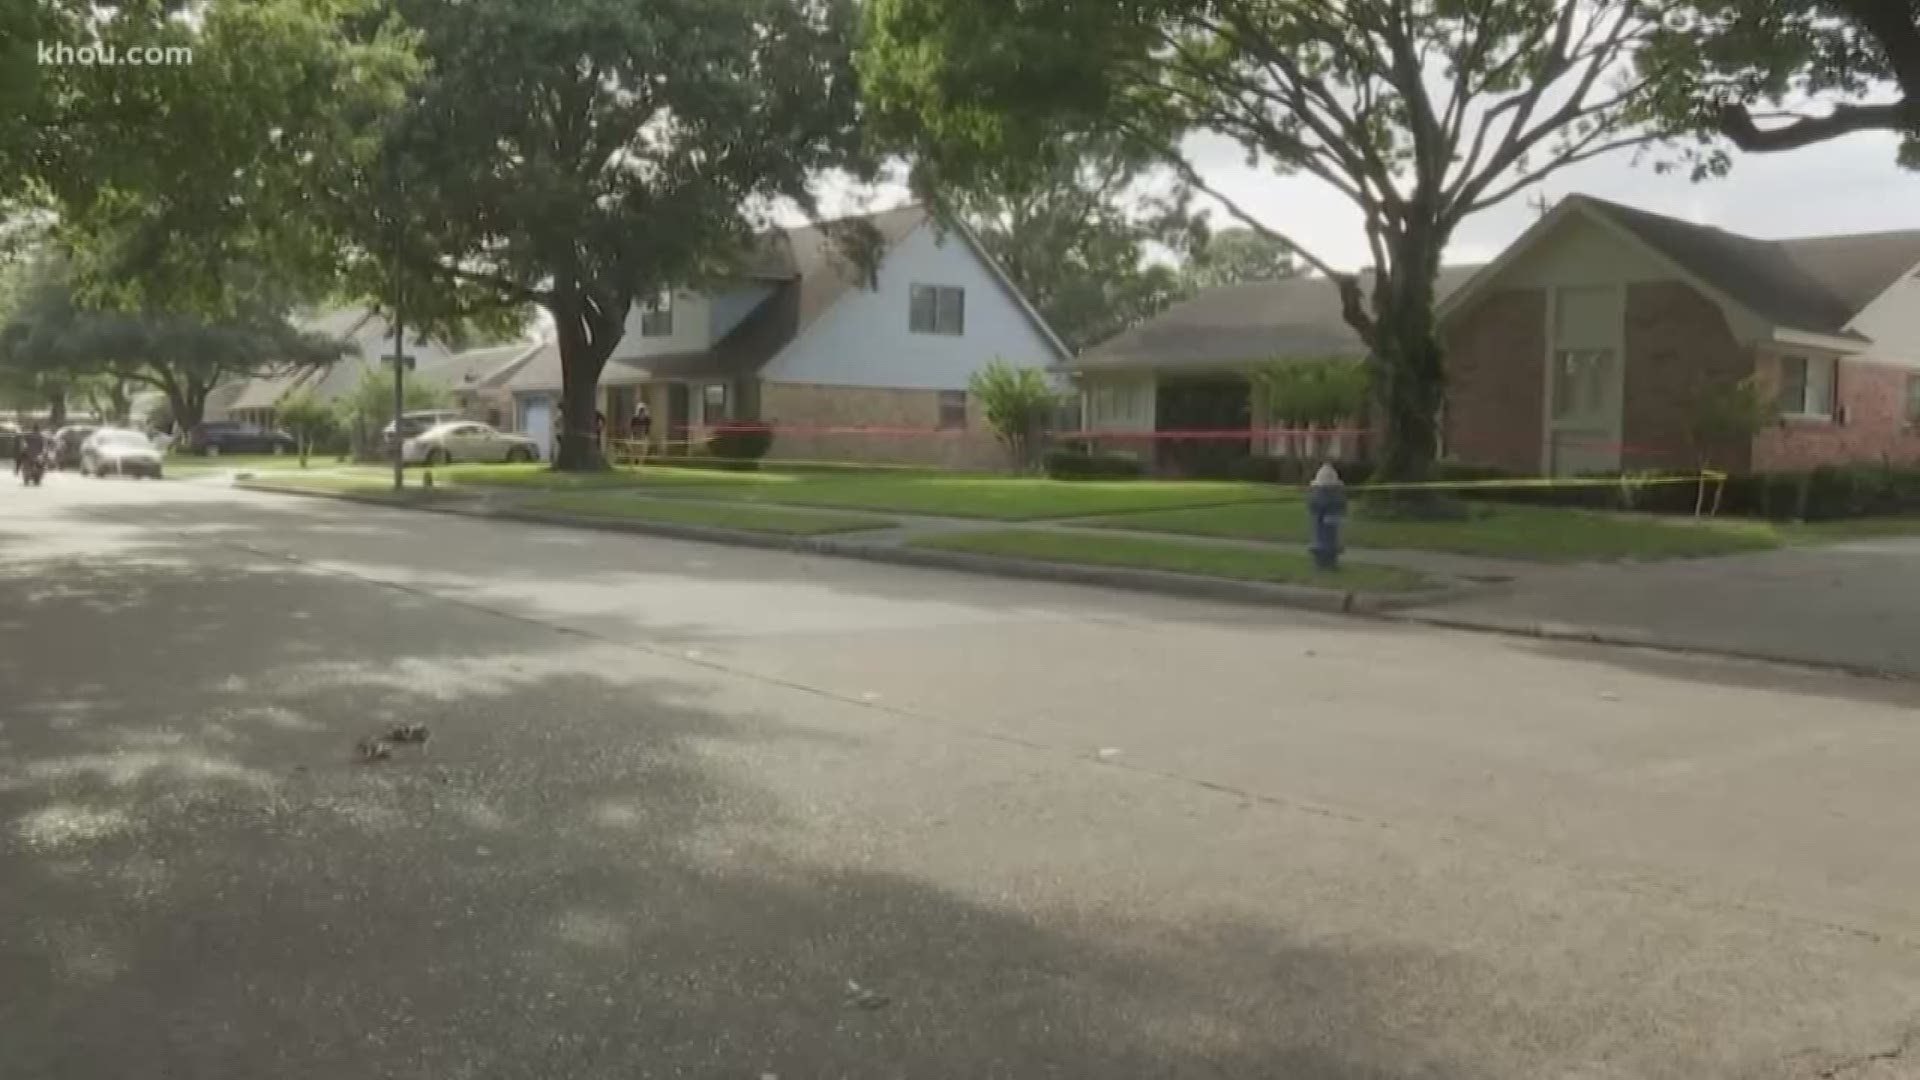 75 Year Old Woman Murdered By Teen Living In Stolen Truck Khou Com